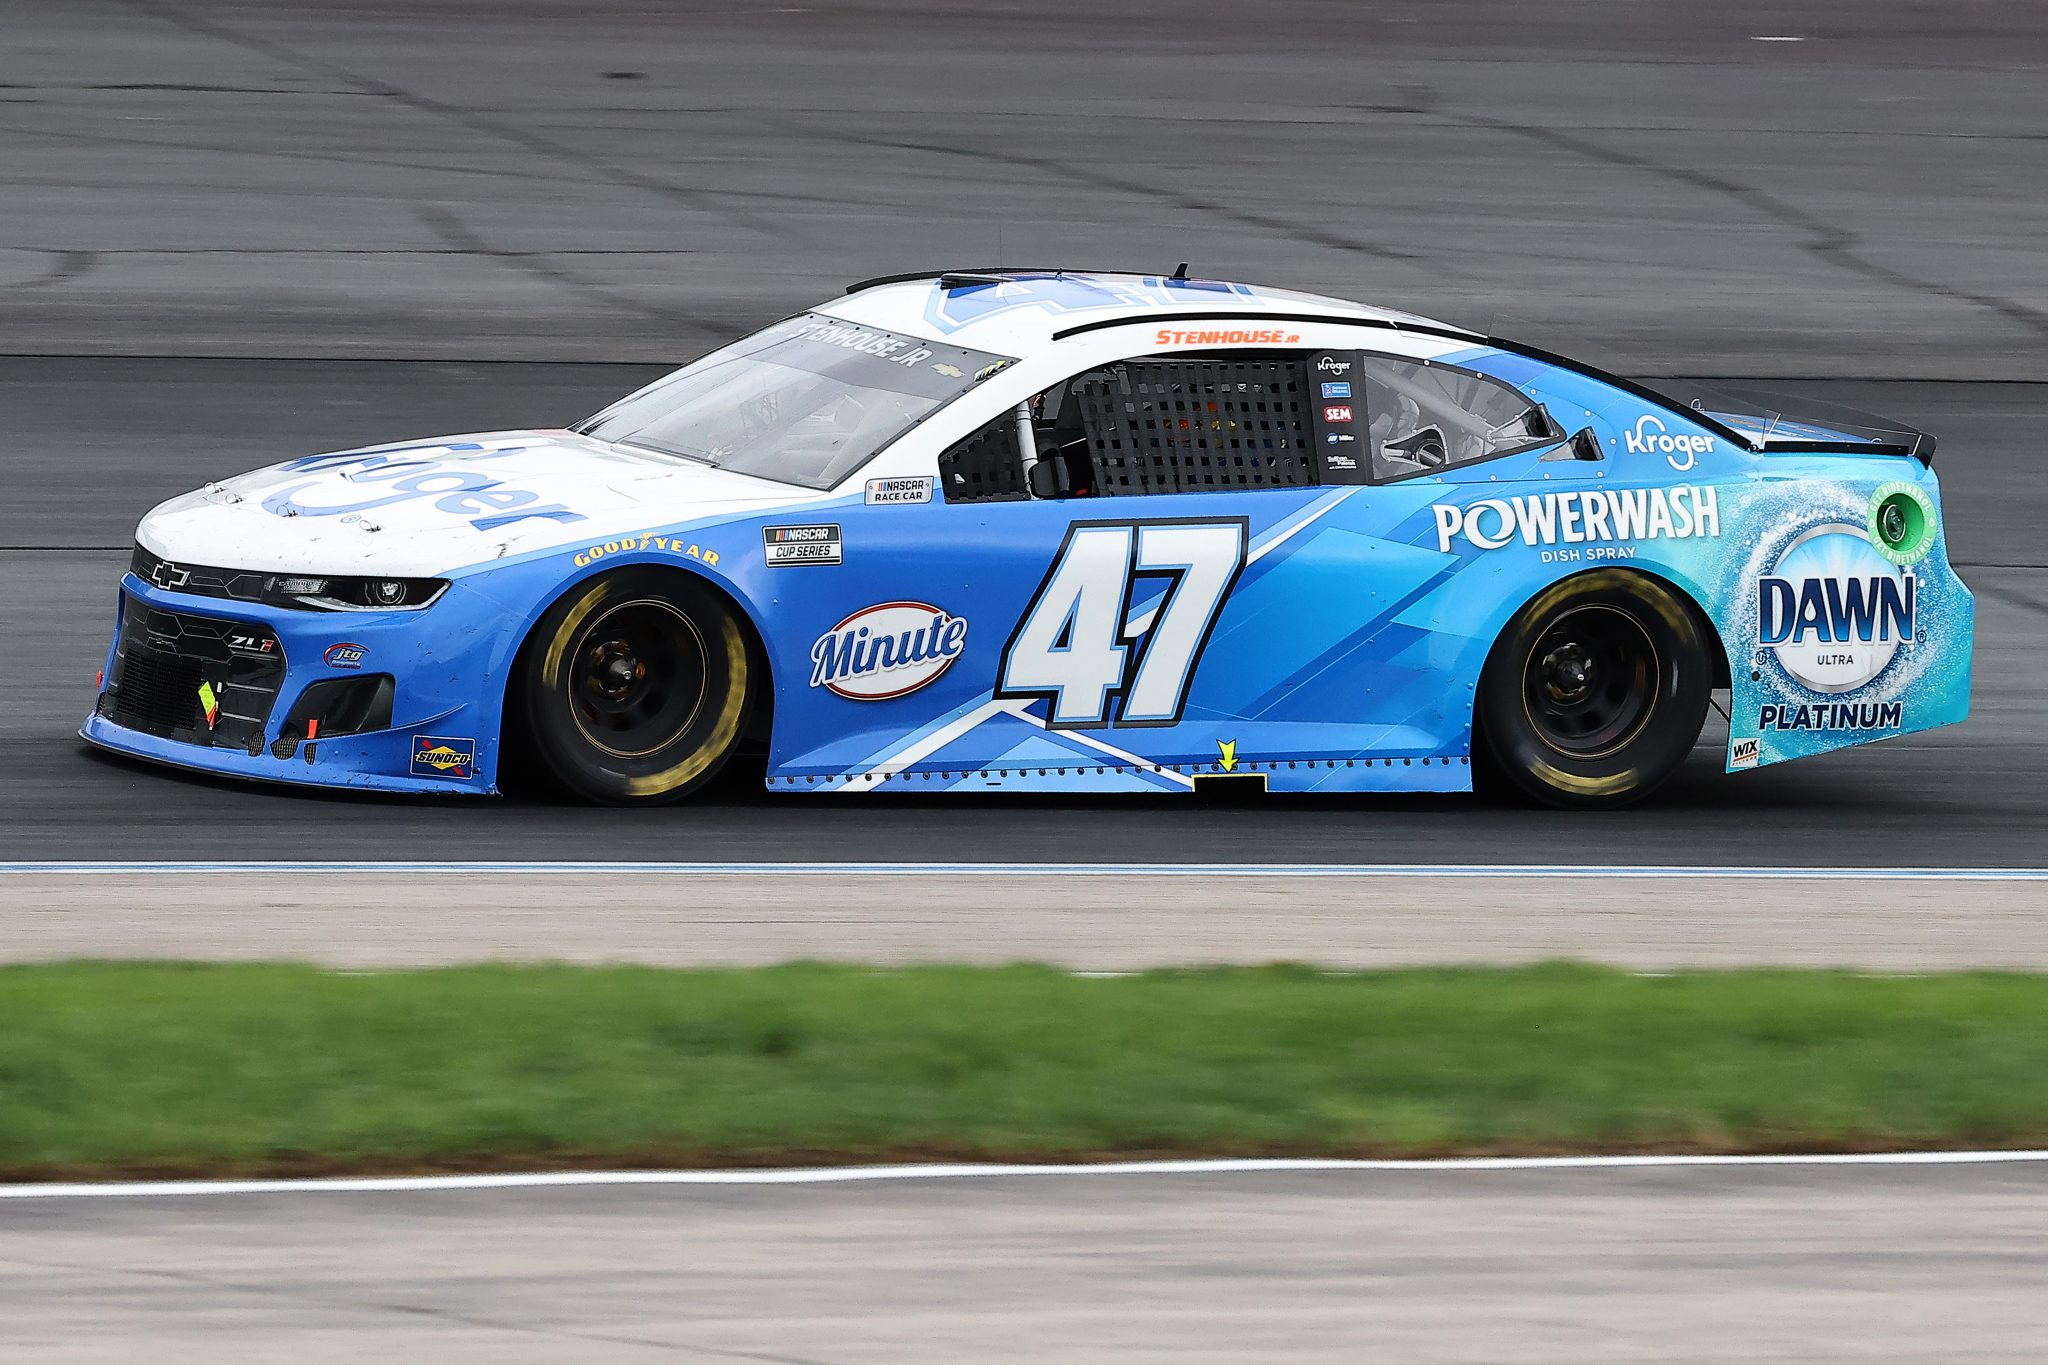 LOUDON, NEW HAMPSHIRE - JULY 18: Ricky Stenhouse Jr., driver of the #47 Kroger/Dawn Chevrolet, drives during the NASCAR Cup Series Foxwoods Resort Casino 301 at New Hampshire Motor Speedway on July 18, 2021 in Loudon, New Hampshire. (Photo by James Gilbert/Getty Images)   Getty Images